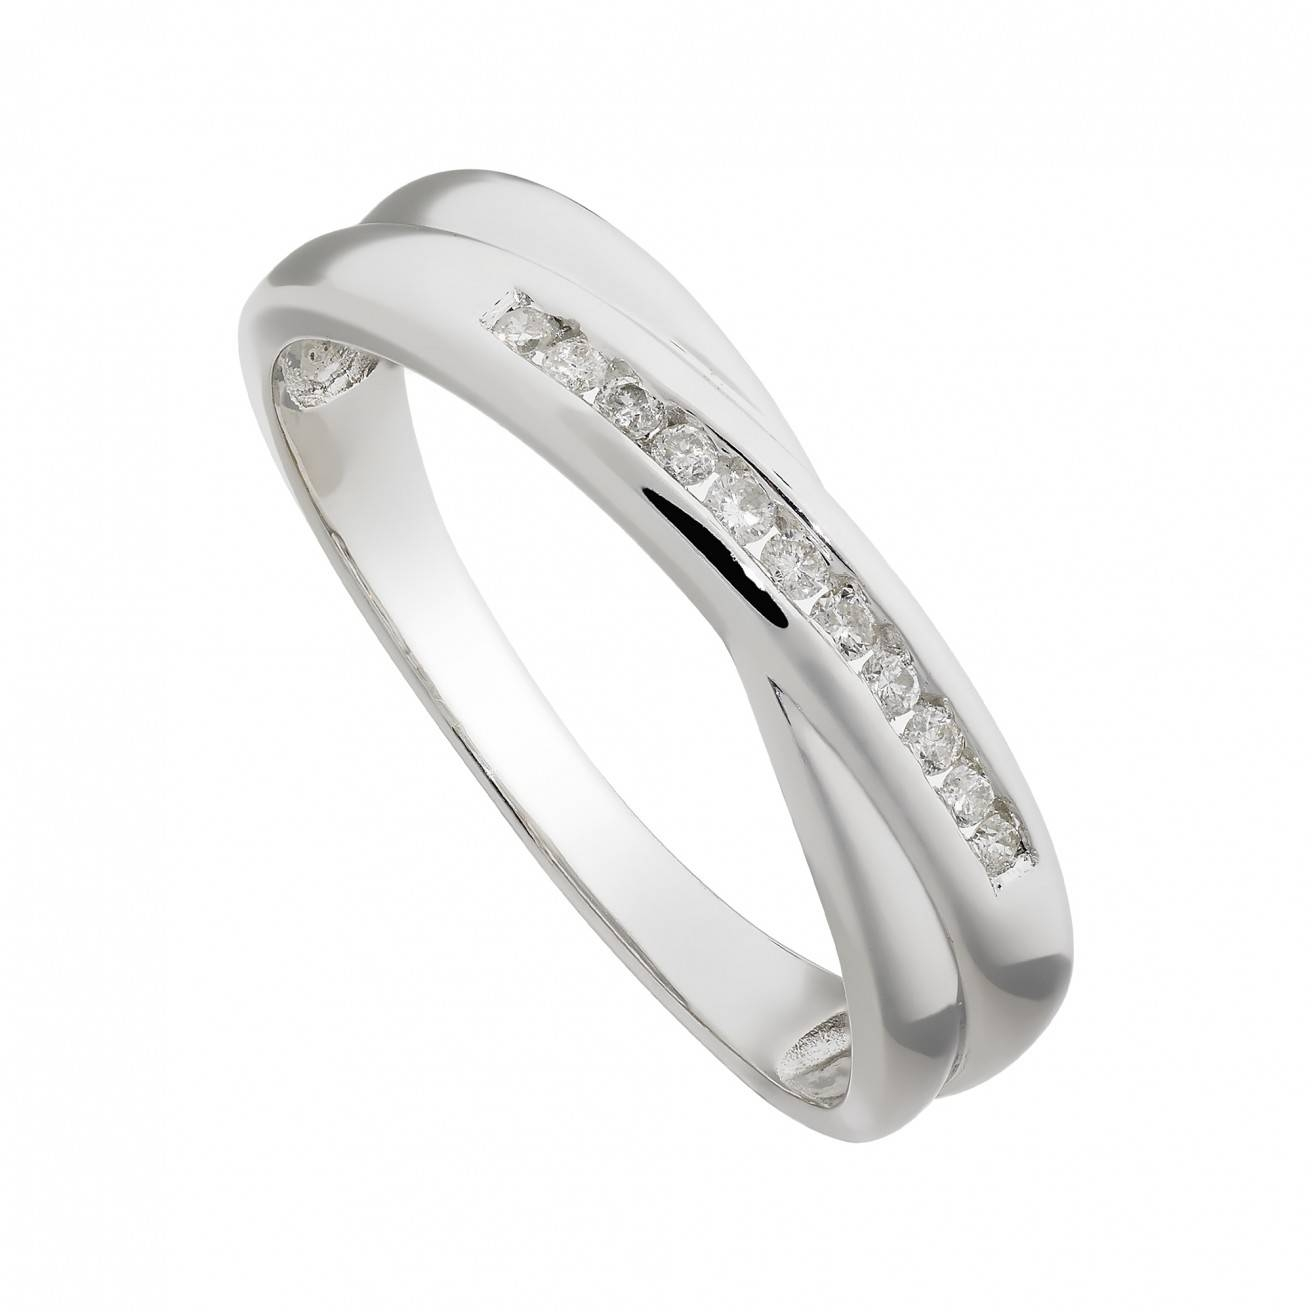 Buy White Gold Wedding Rings Online – Fraser Hart In Ladies White Gold Diamond Wedding Bands (View 14 of 15)